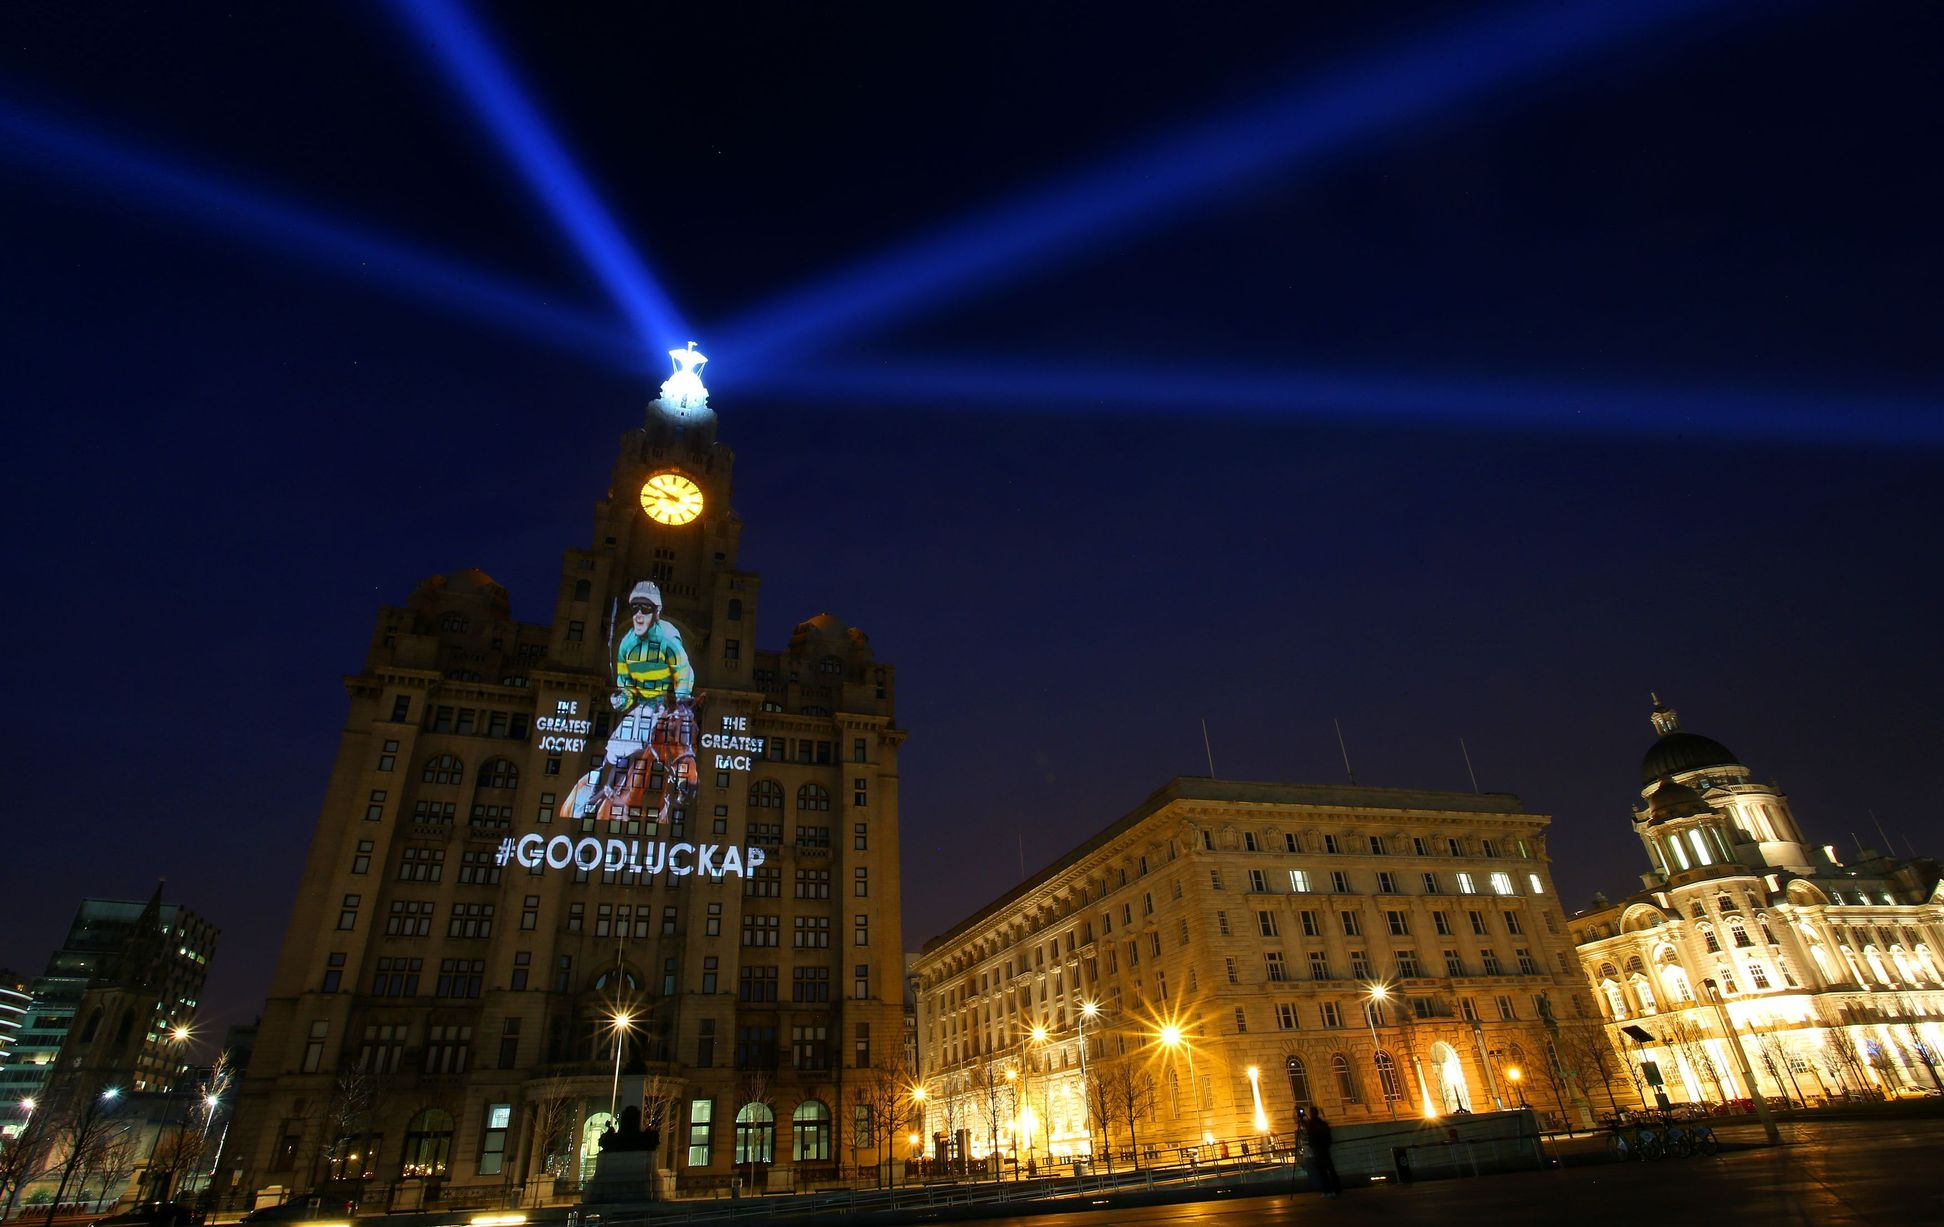 Liver Building Projection